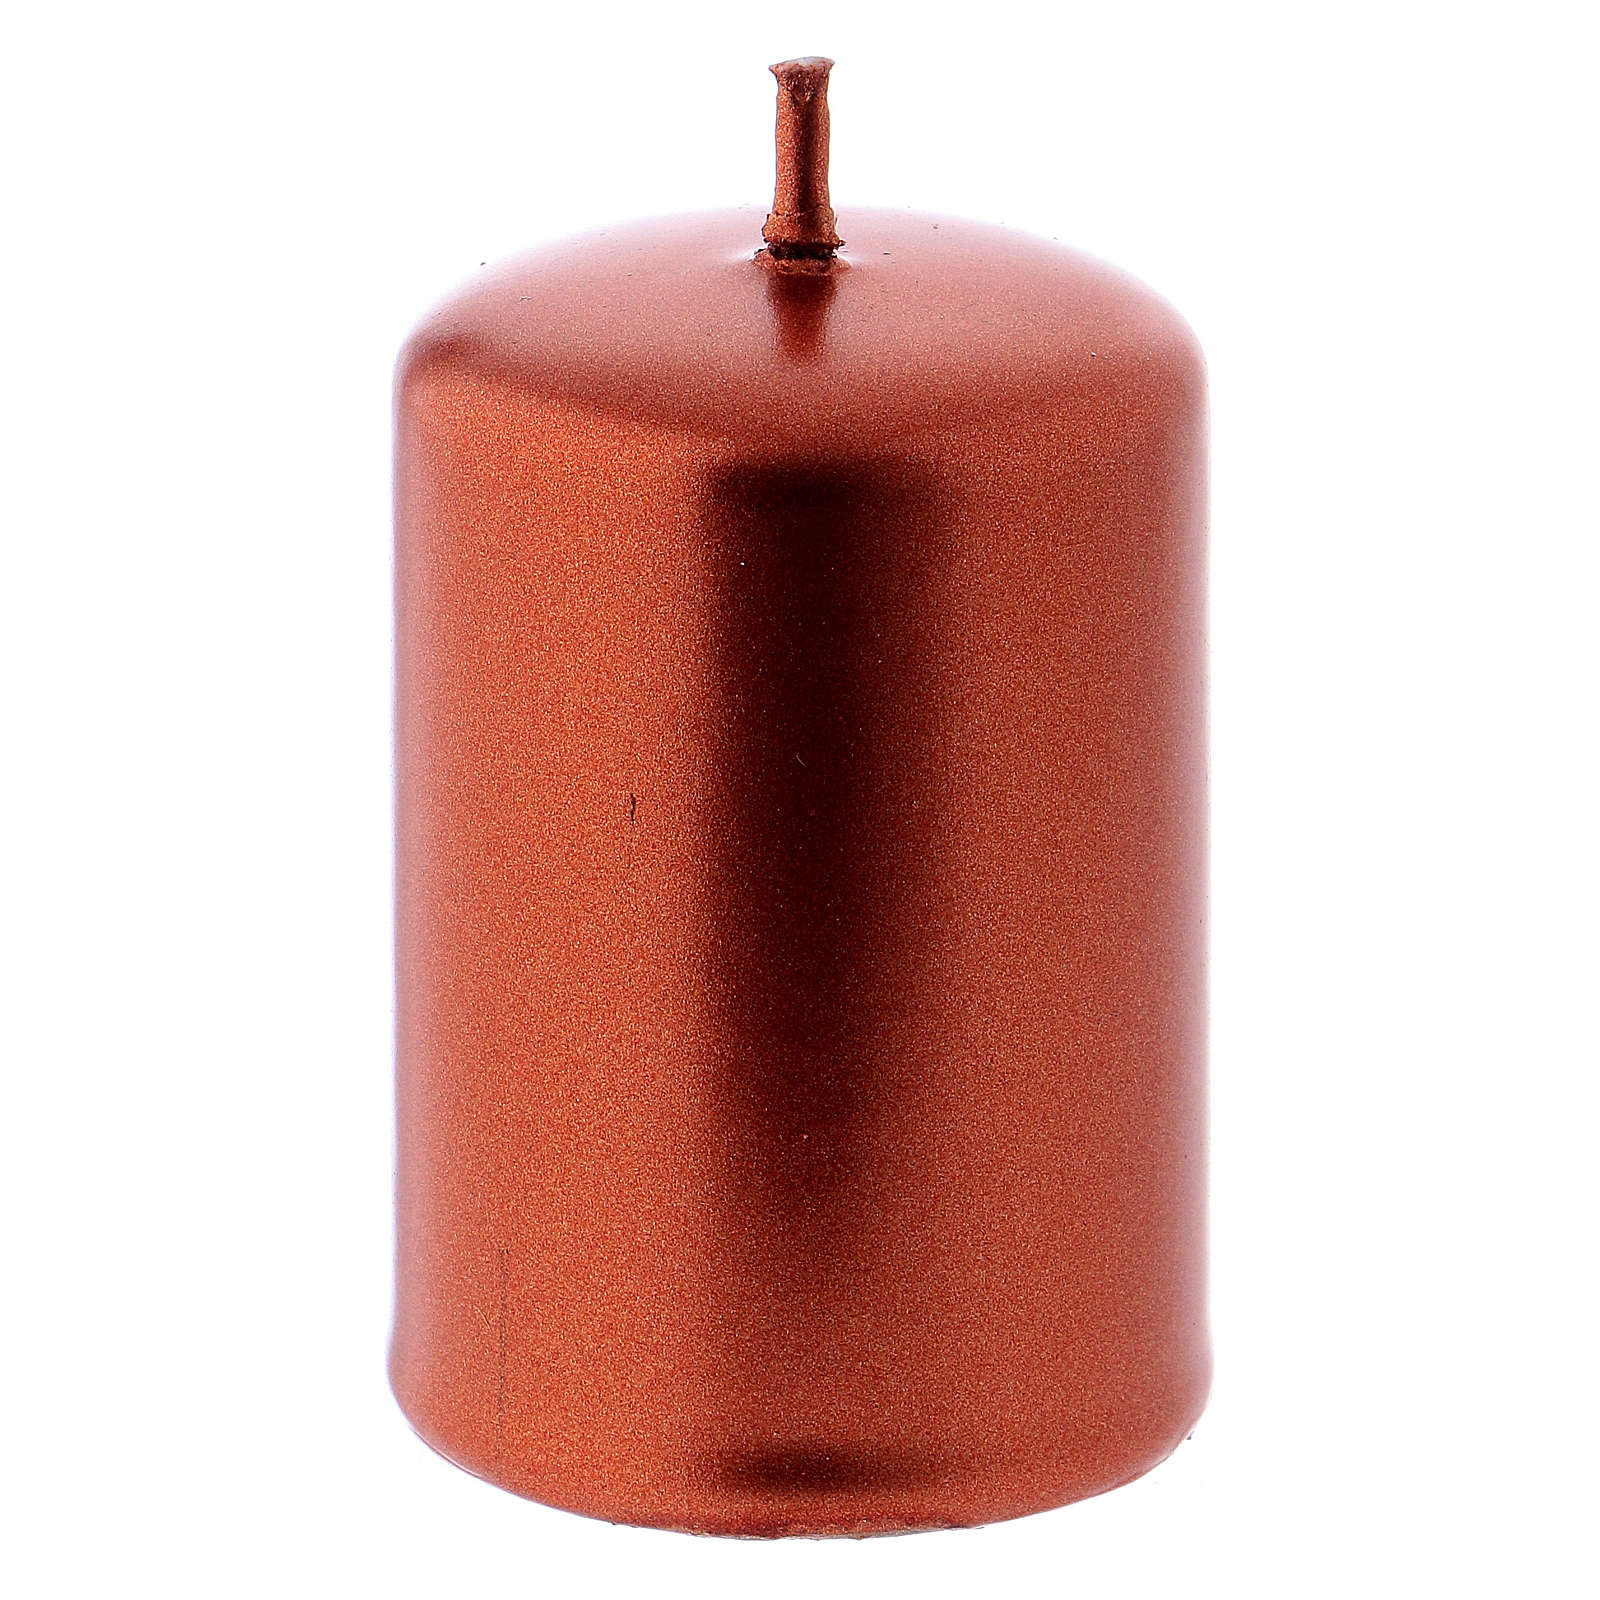 Ceralacca copper-colour metal candle 4x6 cm 3